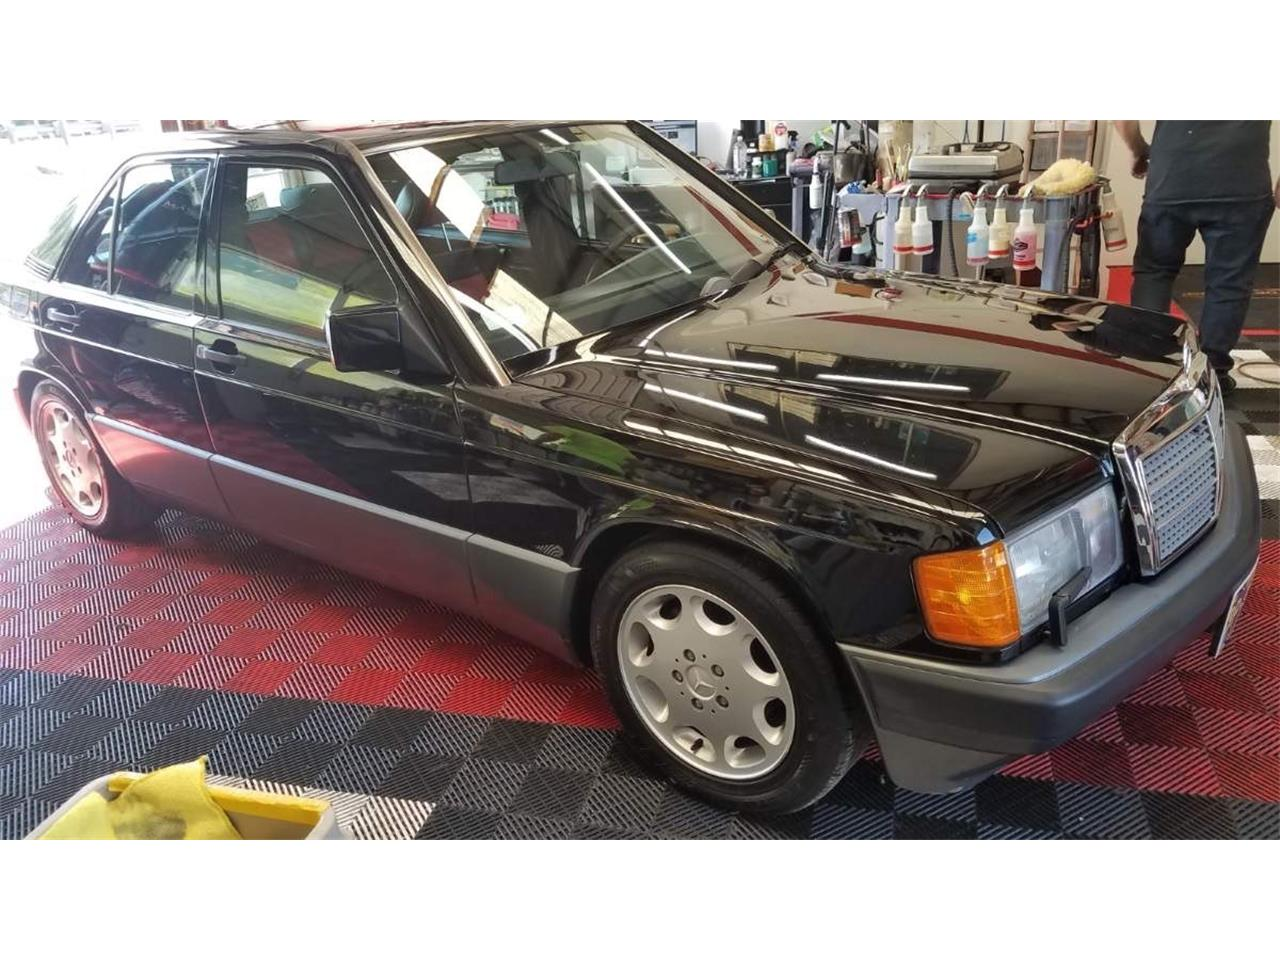 1993 Mercedes-Benz 190E 2 6 (CC-1249800) for sale in ASHLAND, Oregon